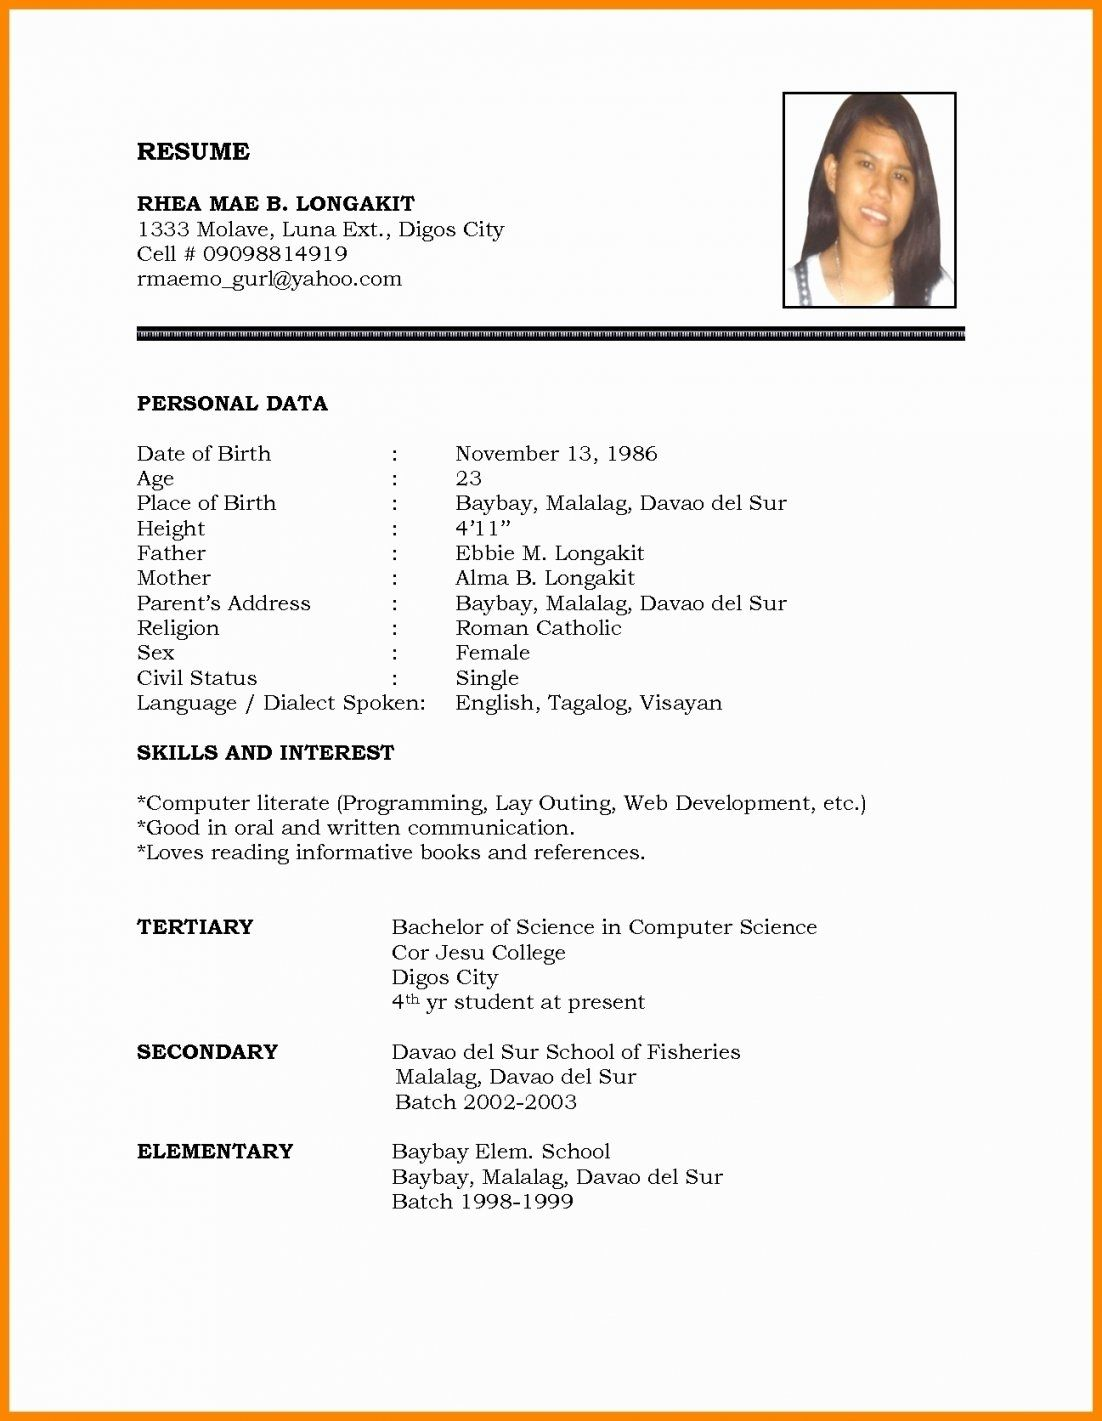 marriage resume format word file beautiful biodata doc in on awesome projects